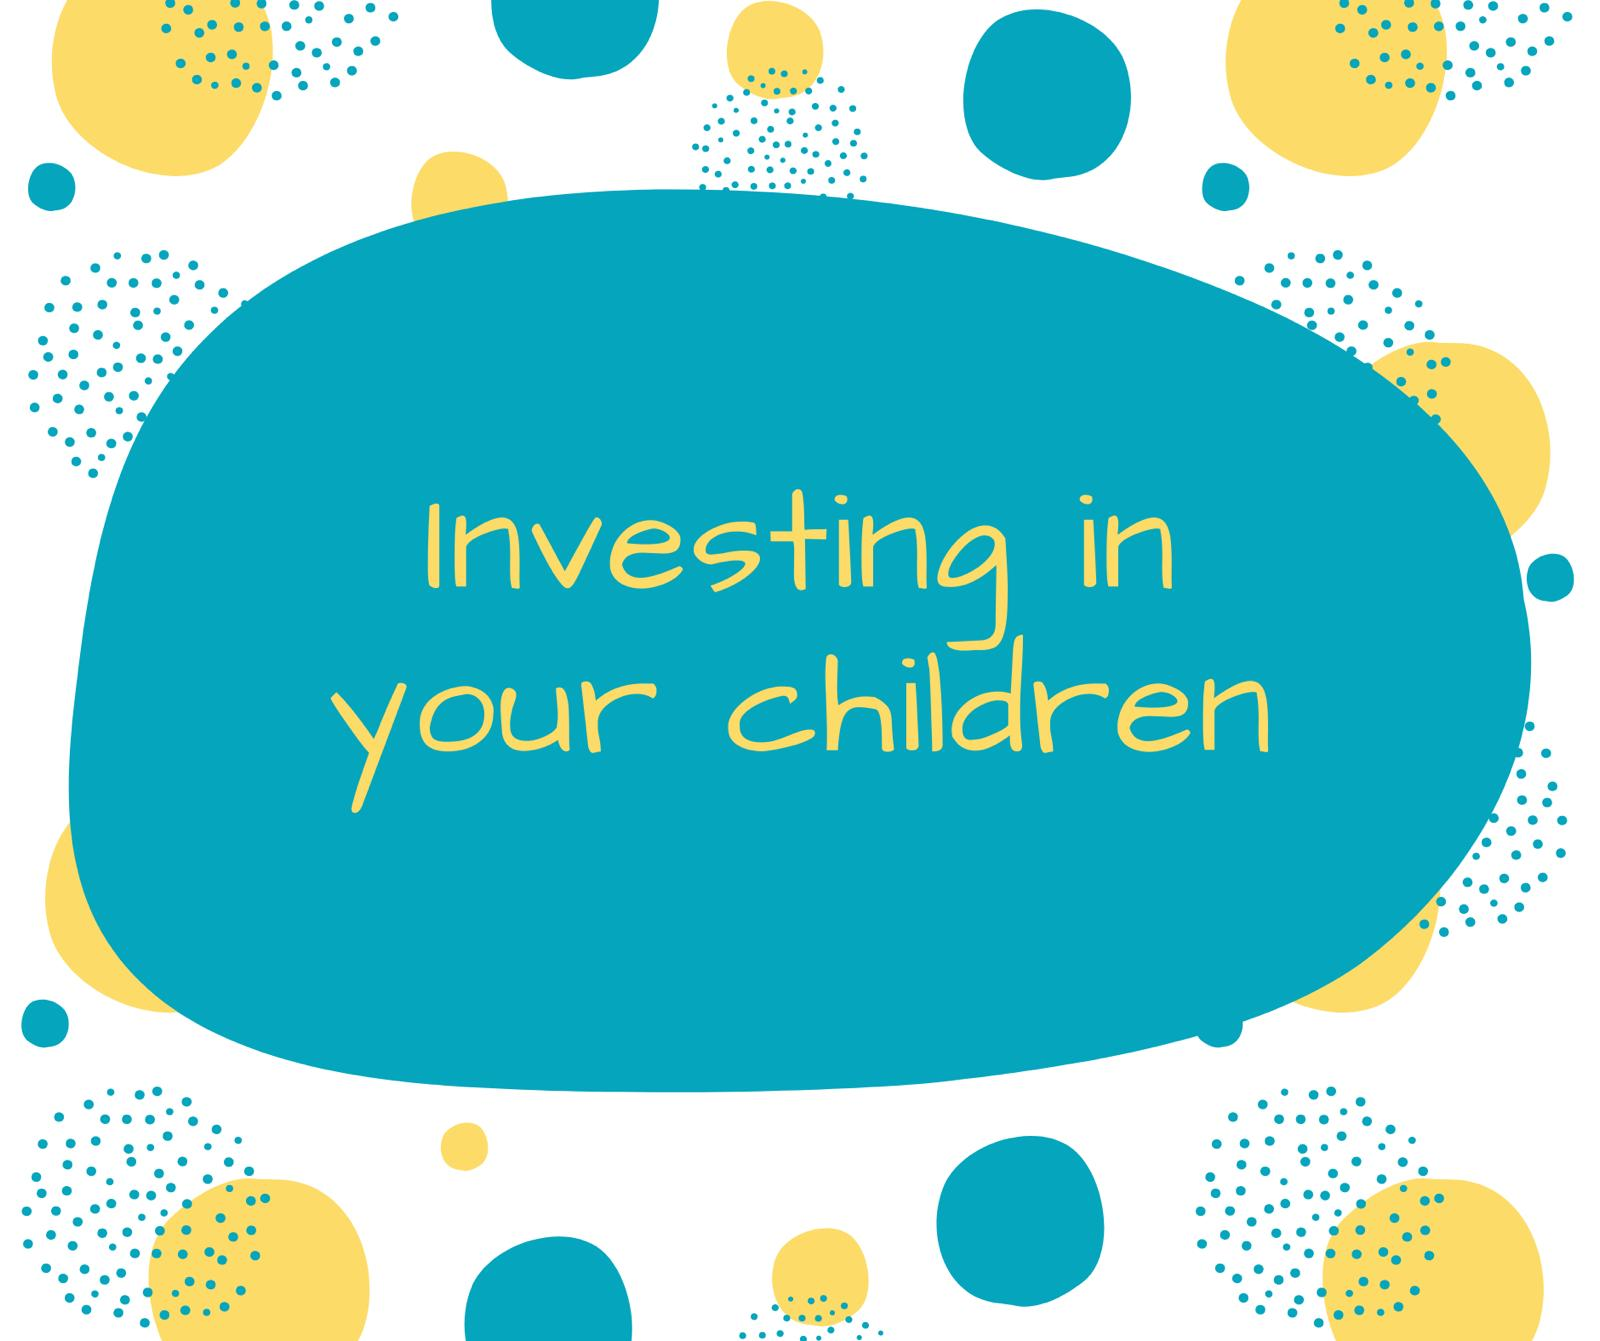 Investing in your children